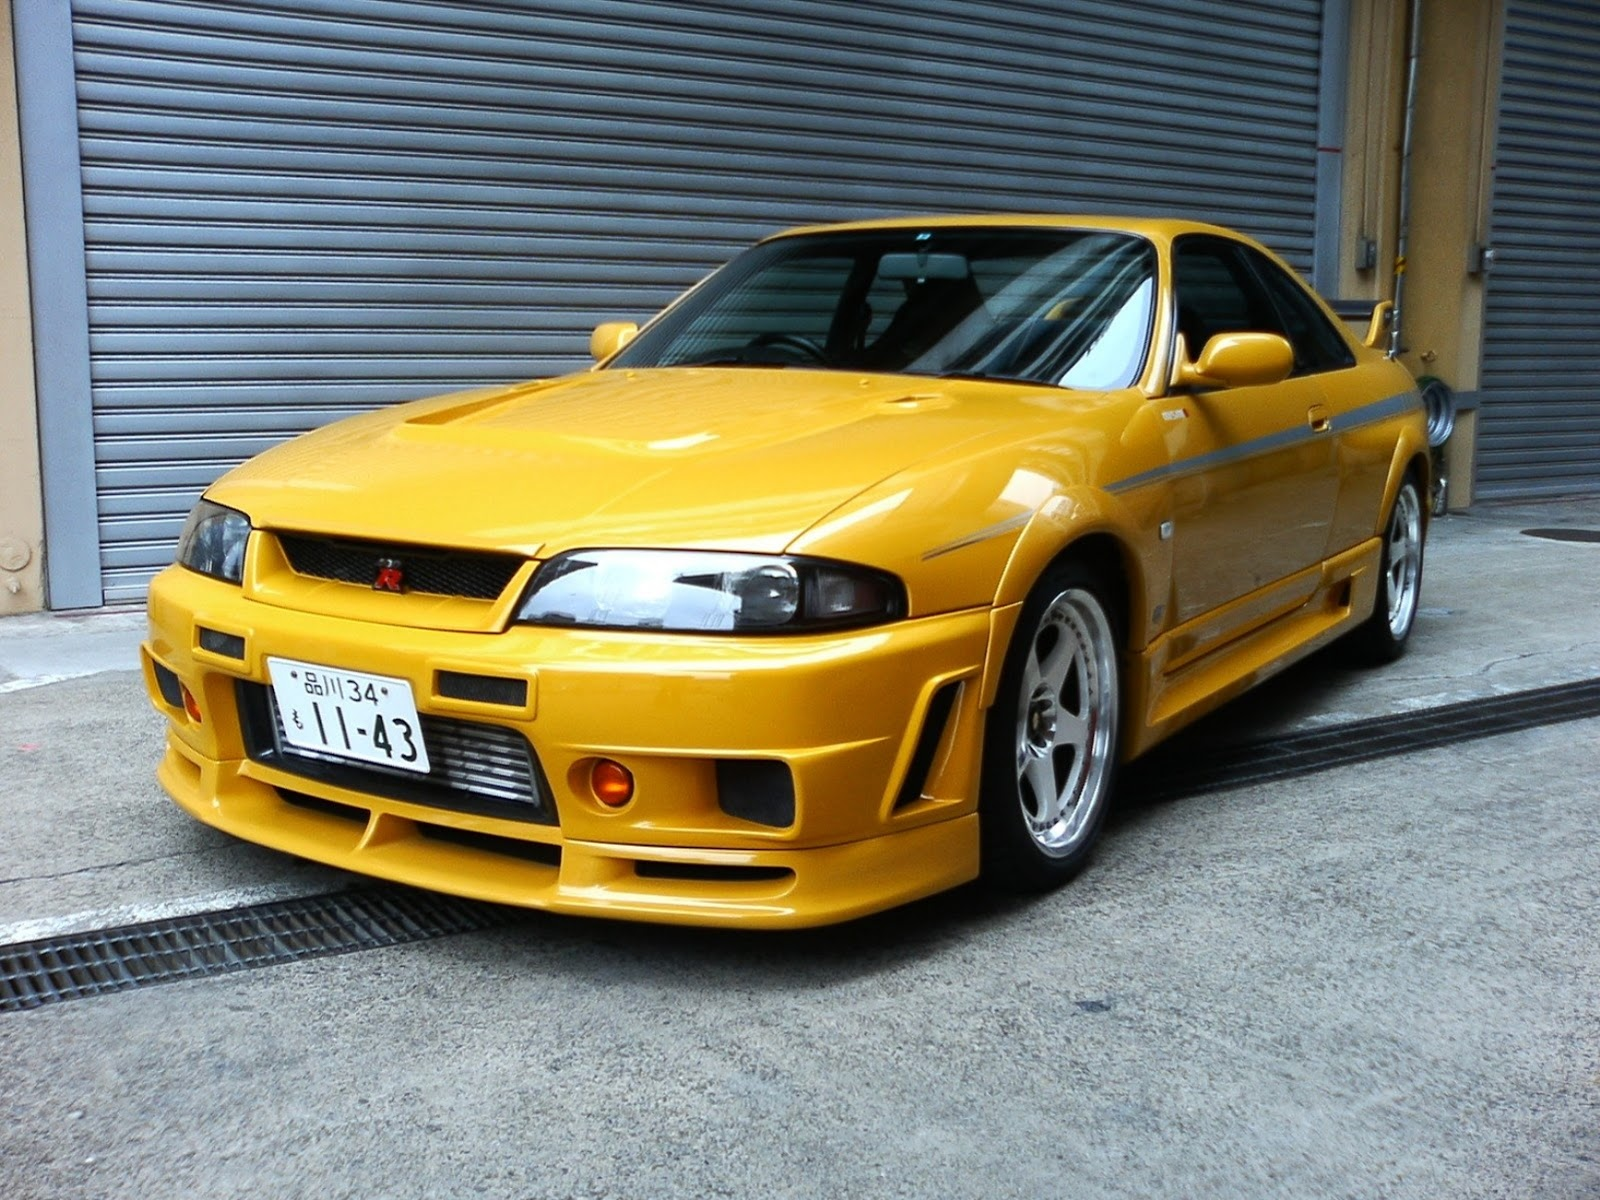 all tuning cars nz 1997 nismo nissan skyline gt r r33 400r. Black Bedroom Furniture Sets. Home Design Ideas